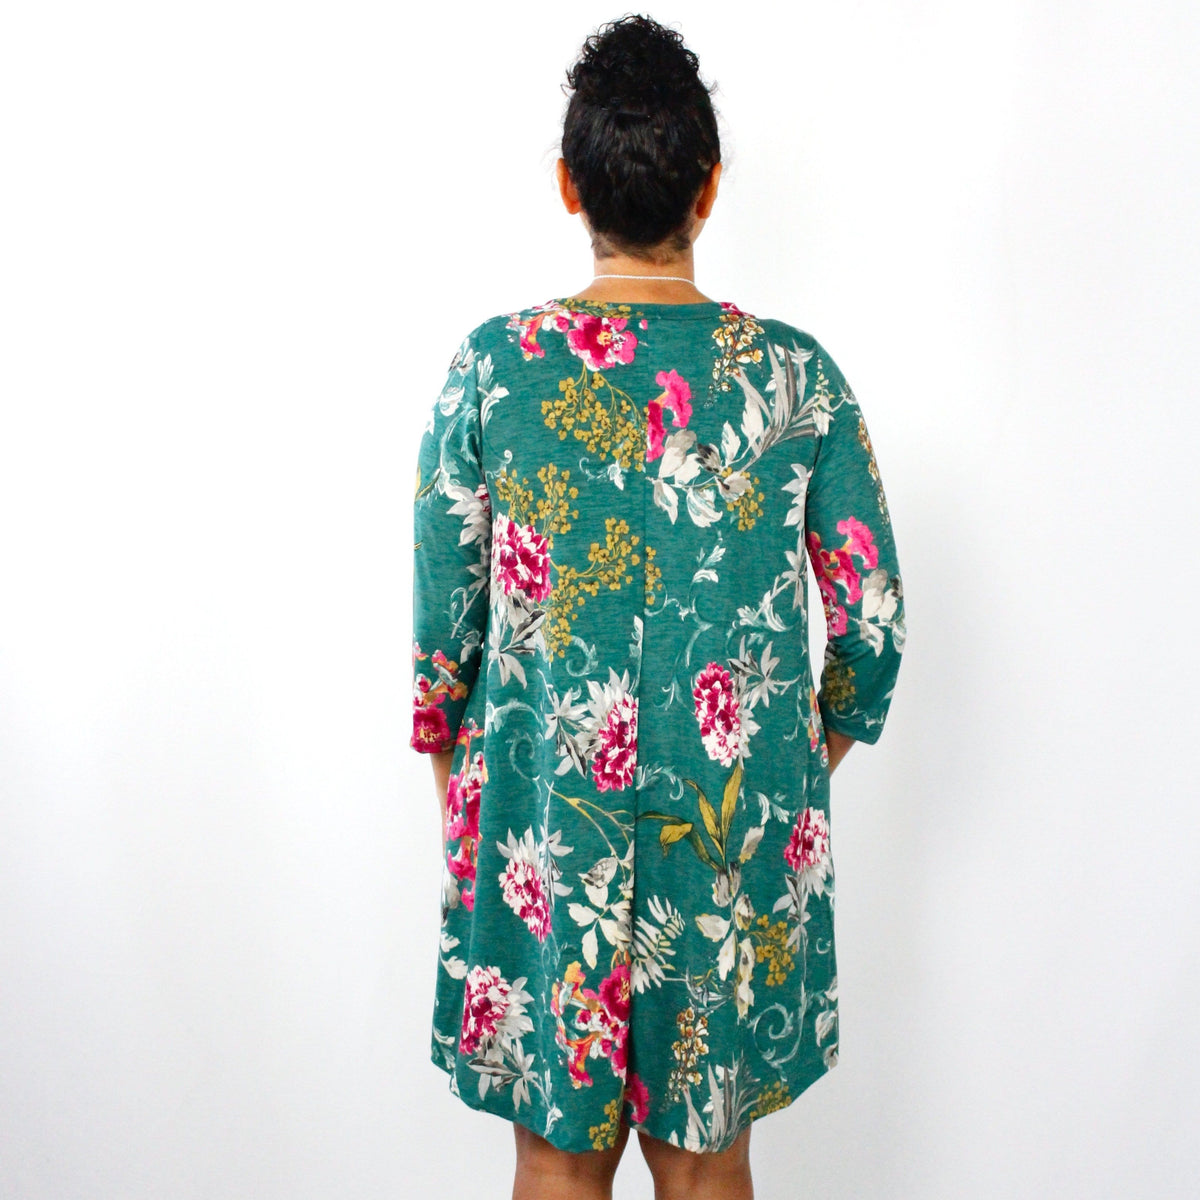 Jade Floral Swing Dress